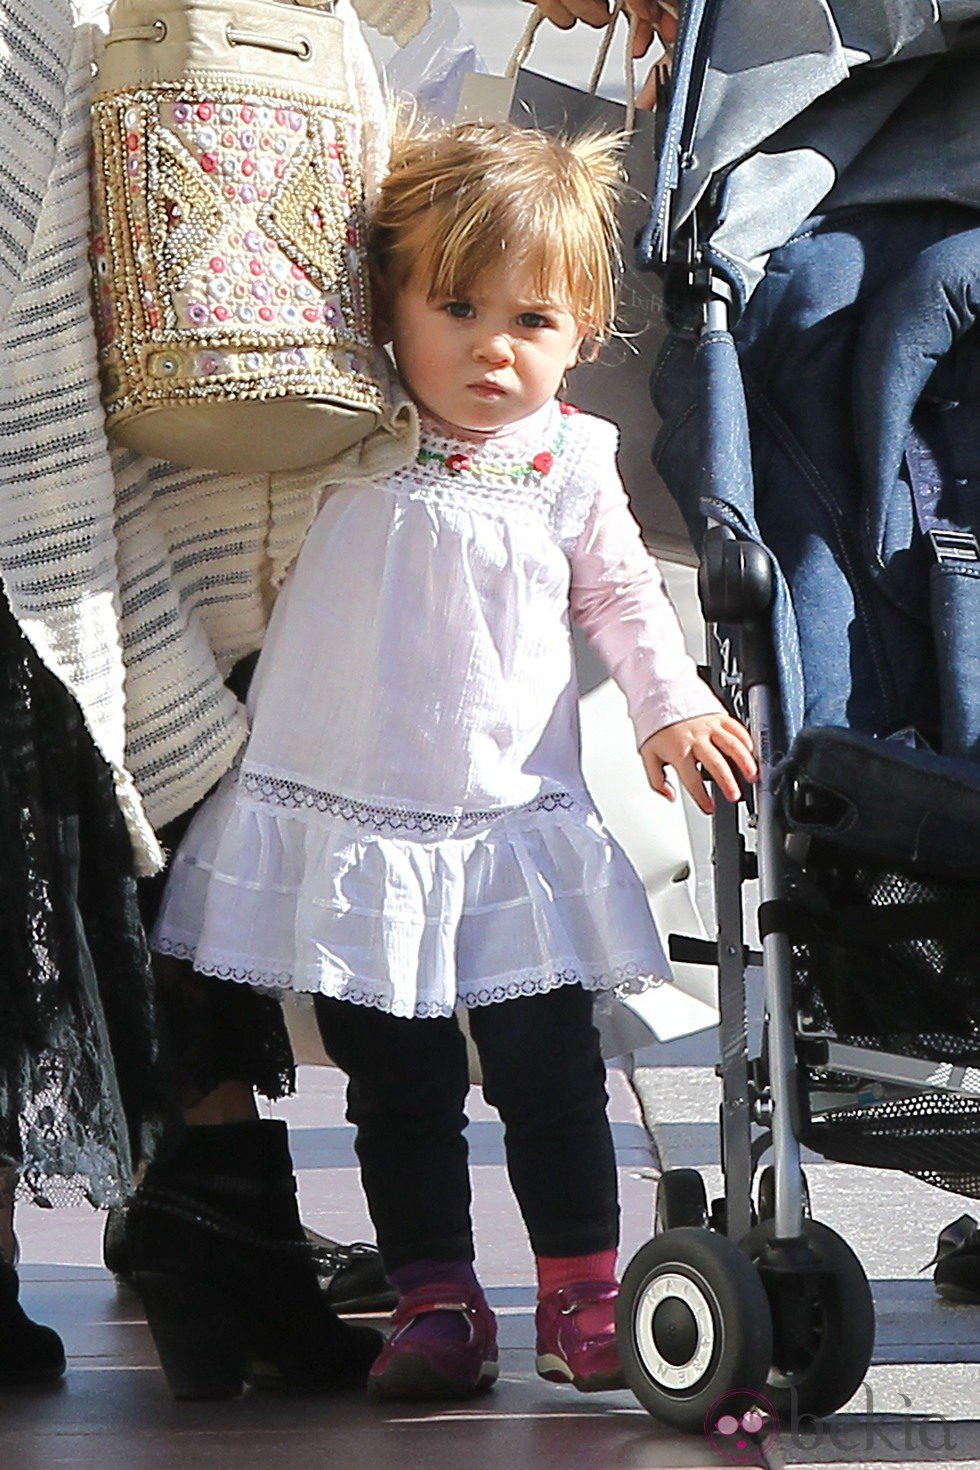 India Rose Hemsworth de compras con su madre